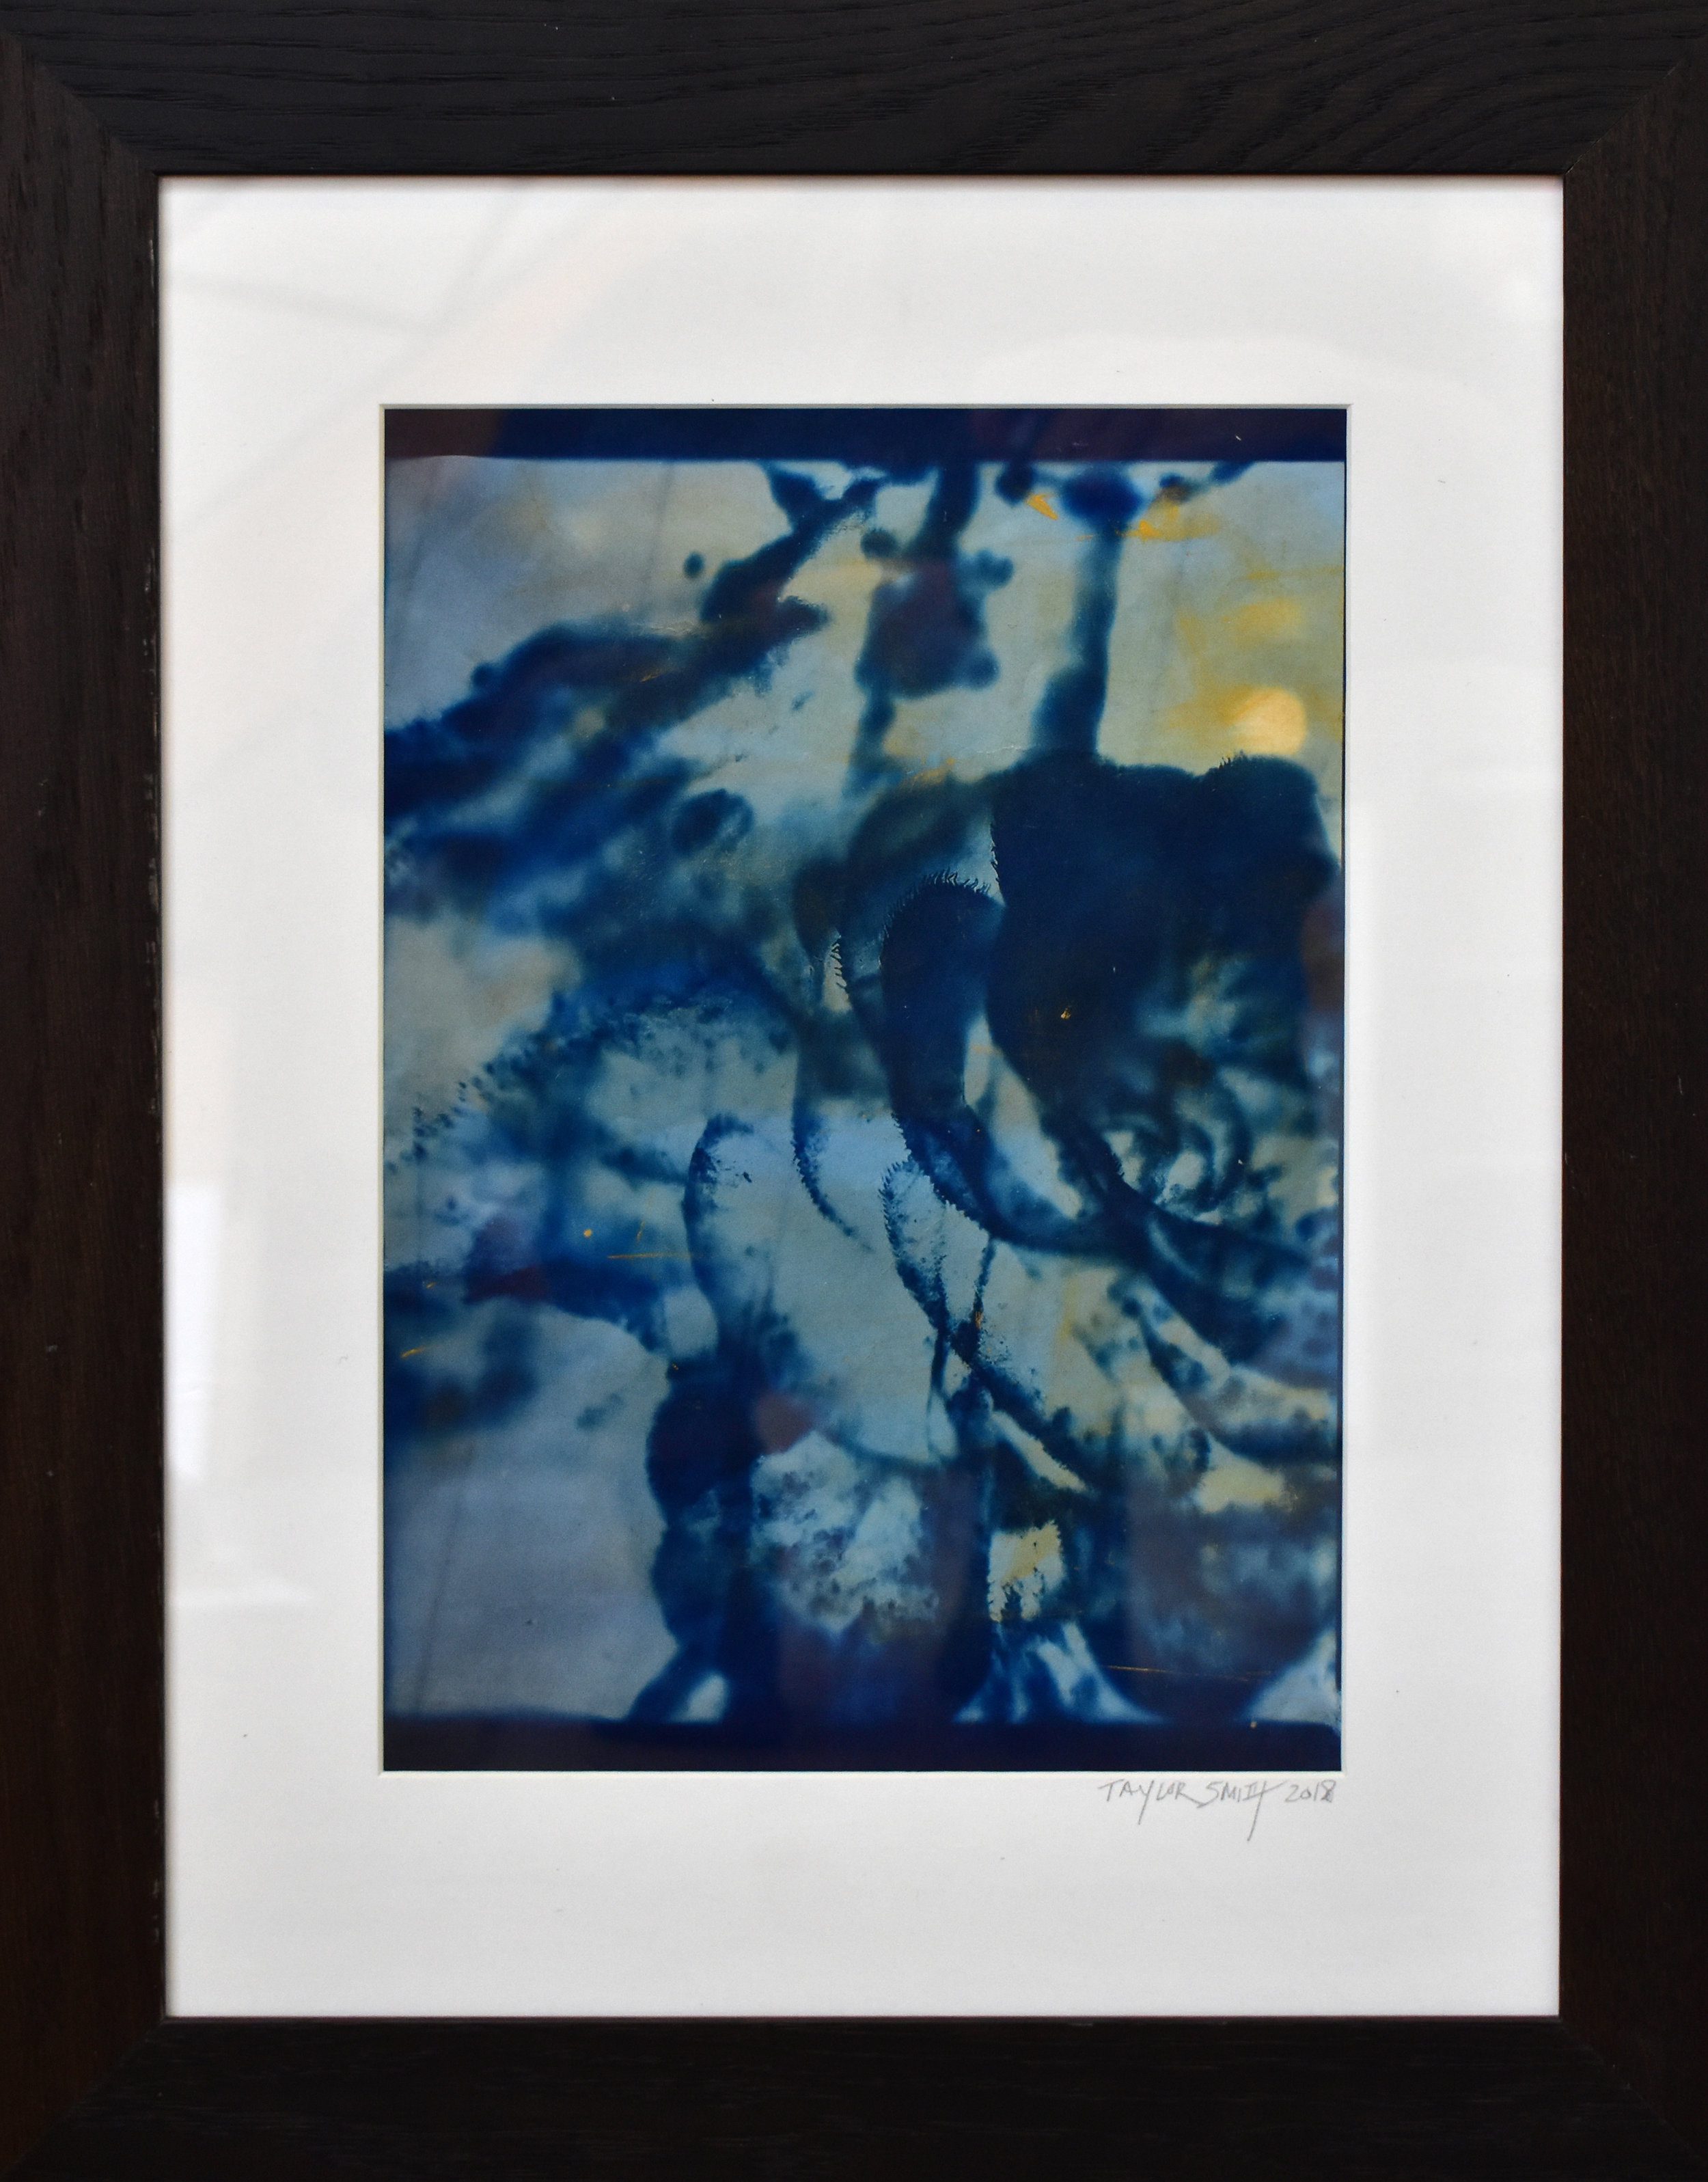 Study No. 1 (succulent bloom),  2018. Cyanotype made with yellow cadmium pigment, from a superposition of a microscopic photograph of an abalone shell collected in Sintra, Portugal, and macroscopique photograph of a cactus flower (Madrid Botanical Garden), both taken by the artist. Printed on Japanese paper, Private collection, Paris, France